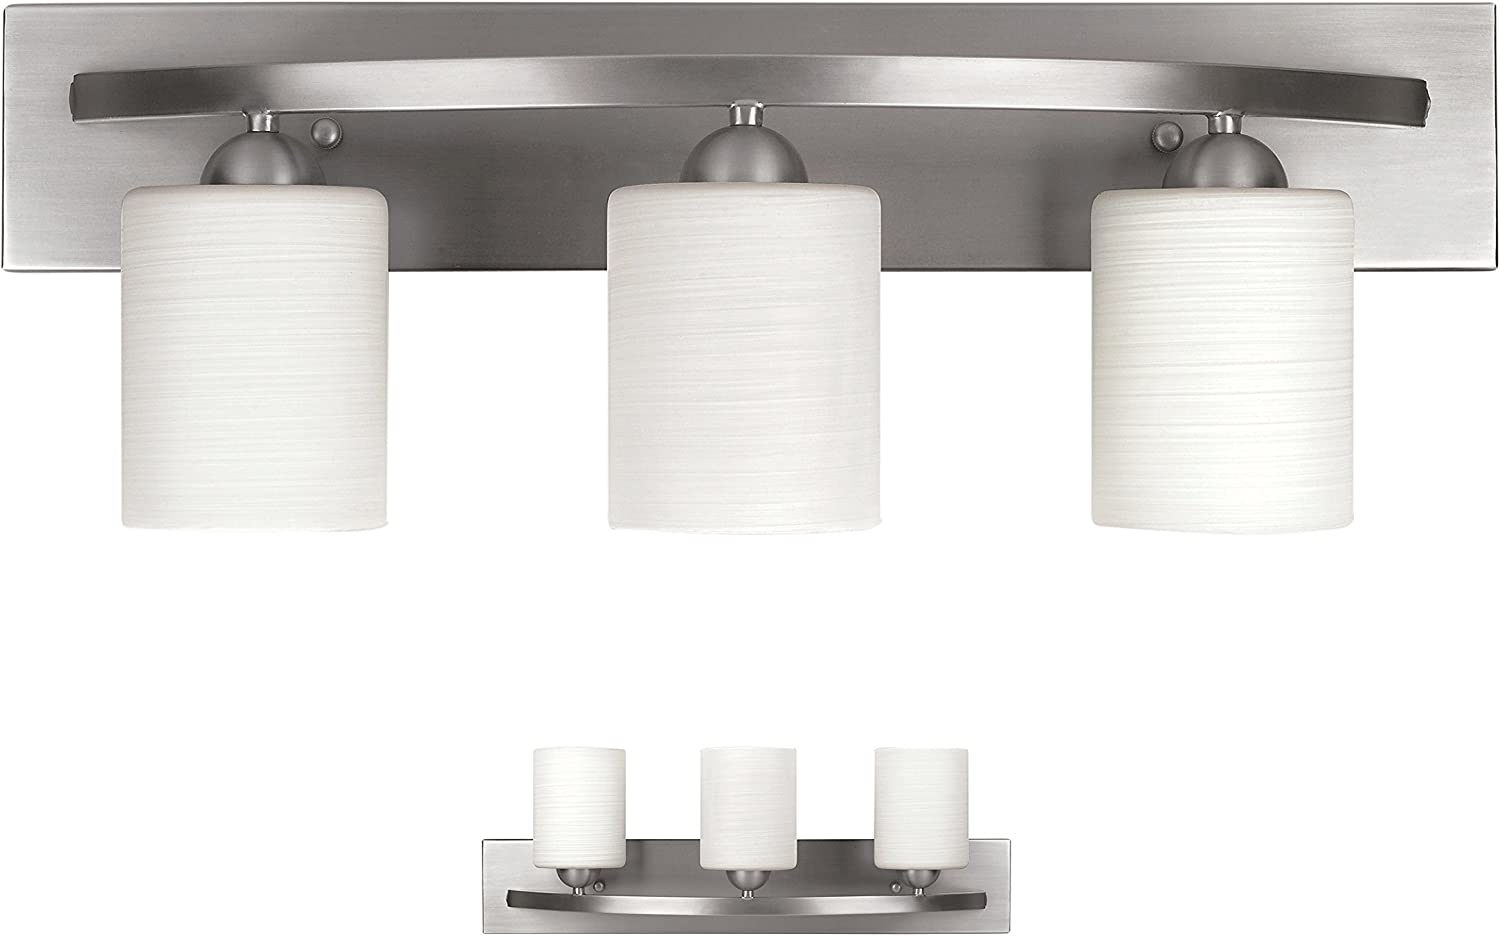 Bennington Lakeland 3-Bulb Bath Vanity Light Fixture Bar, Brushed Nickel - -